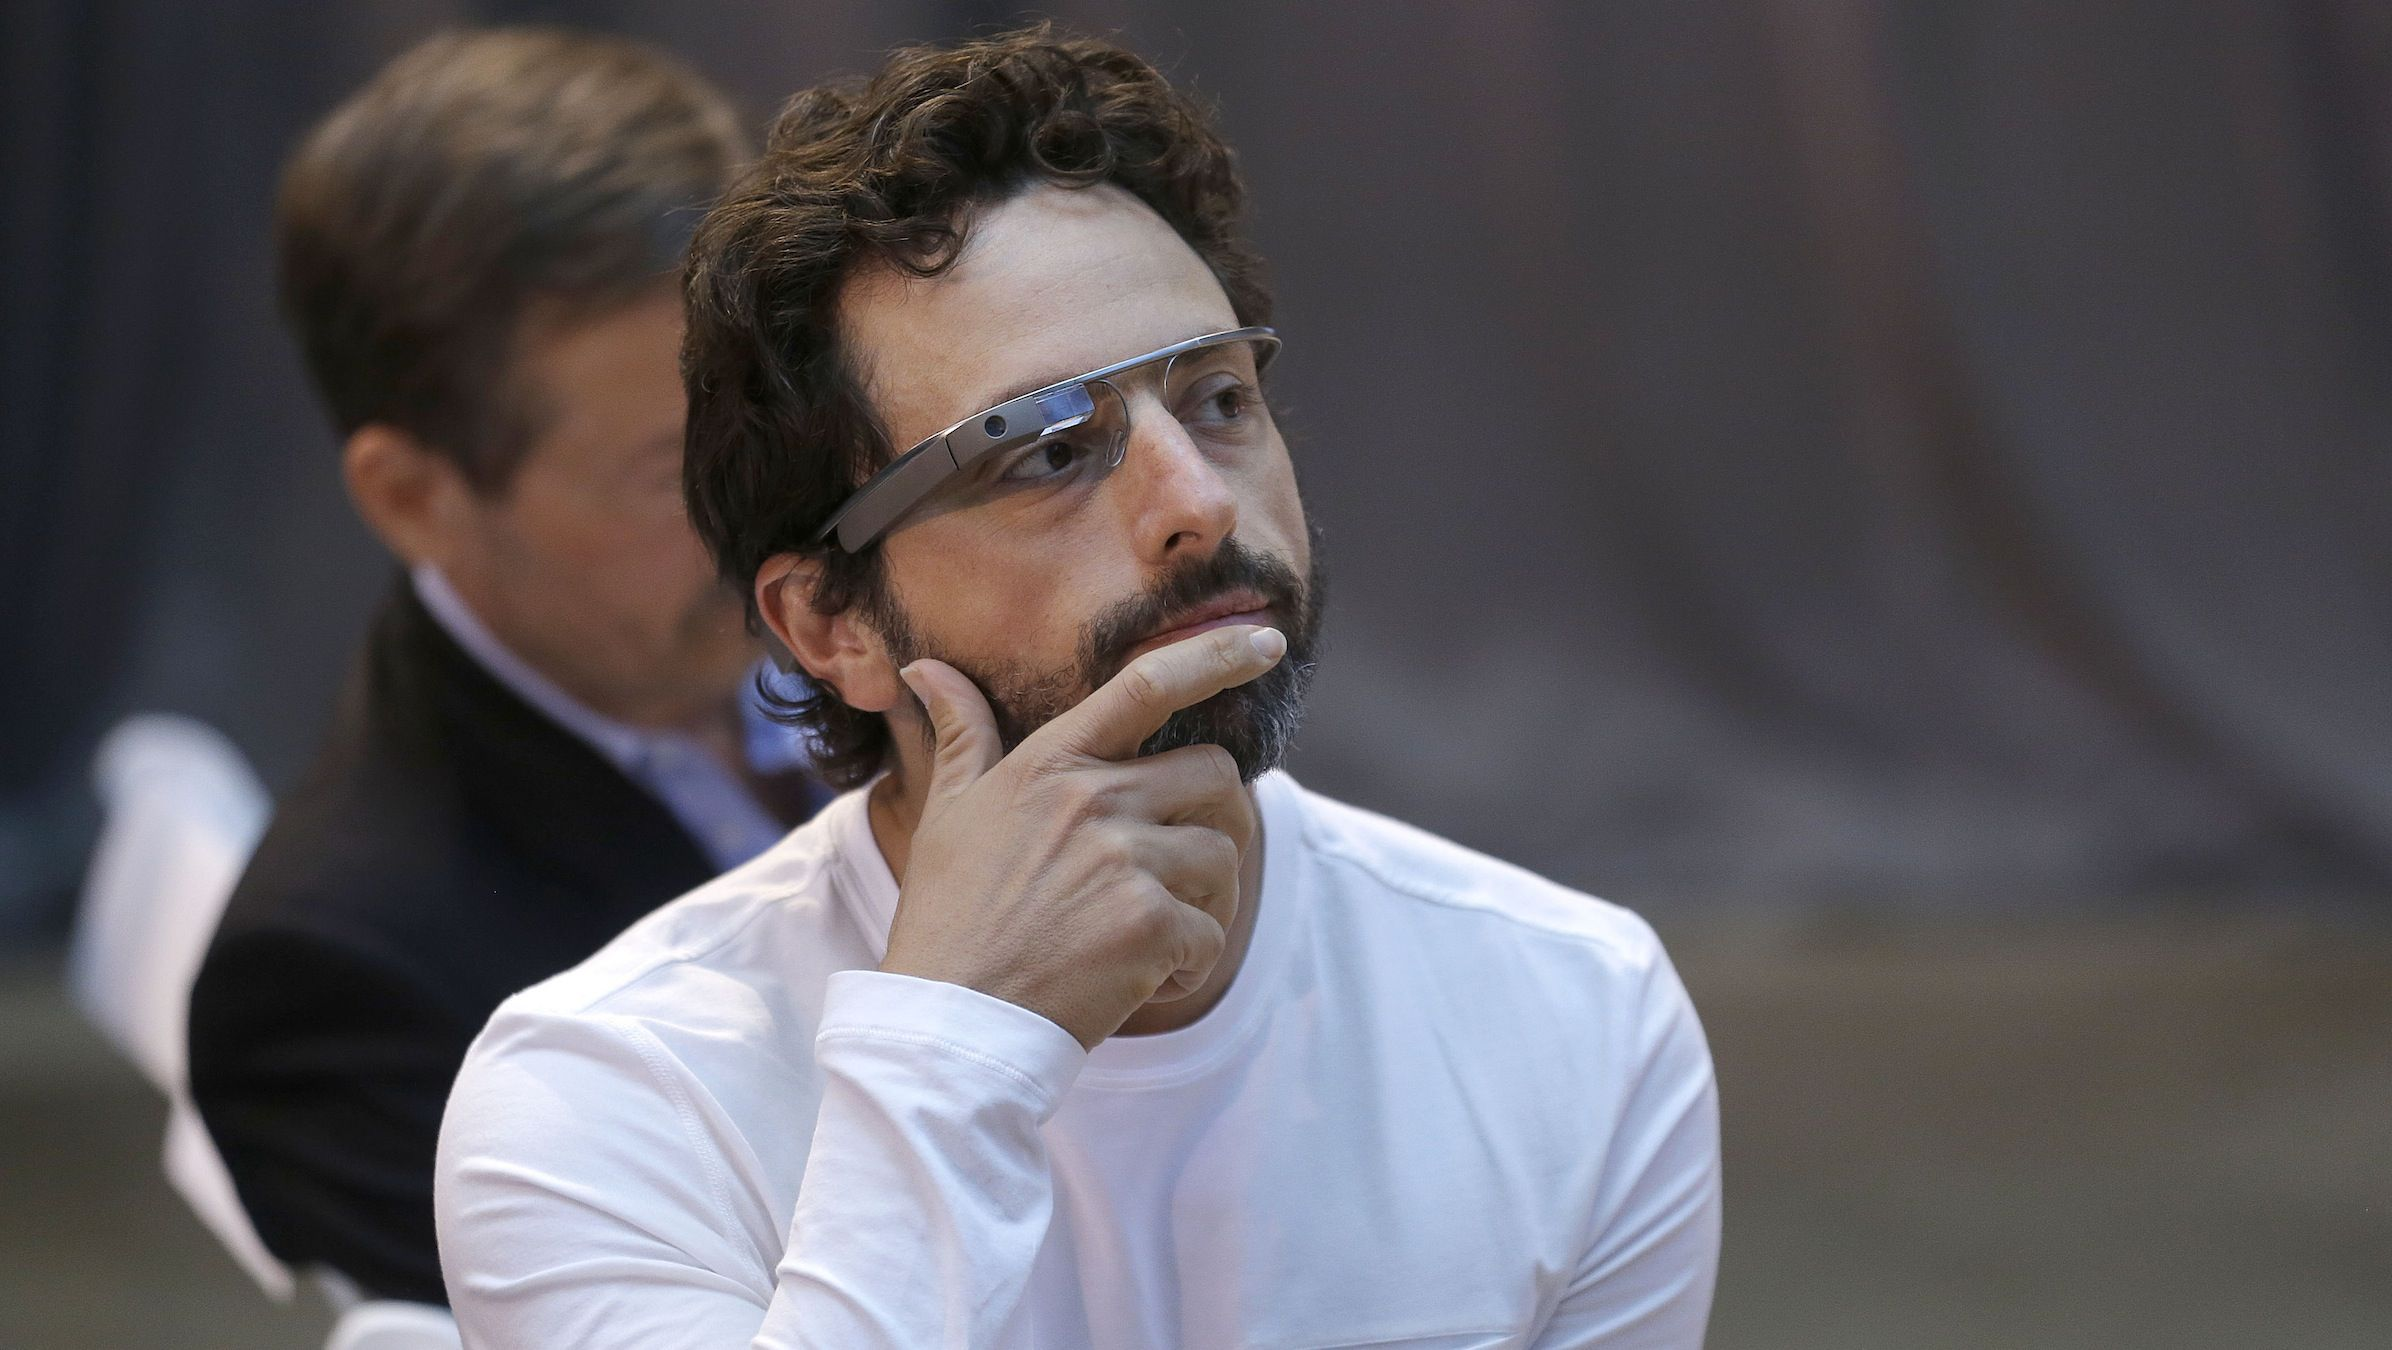 """Google co-rounder Sergey Brin wears Google Glass glasses at an announcement for the Breakthrough Prize in Life Sciences at Genentech Hall on UCSF's Mission Bay campus in San Francisco, Wednesday, Feb. 20, 2013. Google is giving more people a chance to pay $1,500 for a pair of the Internet-connected glasses that the company is touting as the next breakthrough in mobile computing. The product, dubbed """"Google Glass,"""" will be offered to """"bold, creative individuals"""" selected as part of a contest announced Wednesday. Participants must live in the U.S. and submit an application of up to 50 words explaining what they would do with the Google Glass technology. (AP Photo/Jeff Chiu)"""